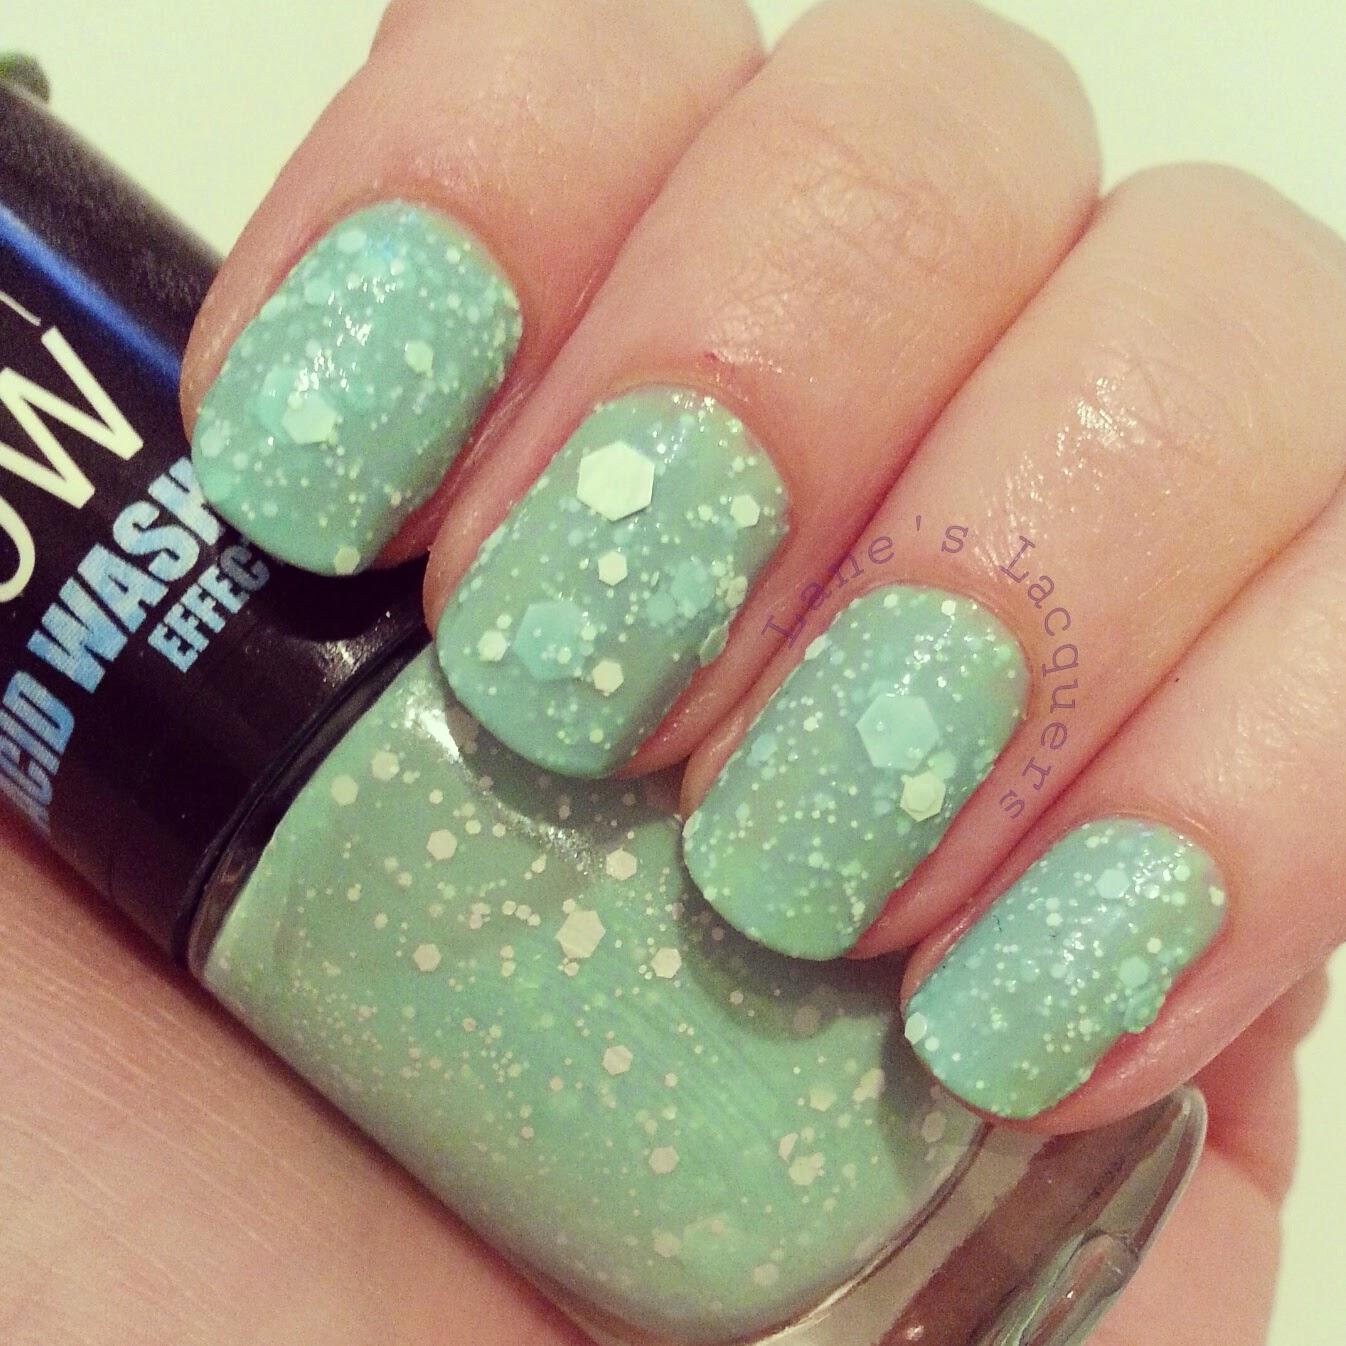 maybelline-colorshow-acid-wash-mint-acid-ittude-swatch-mancicure (2)